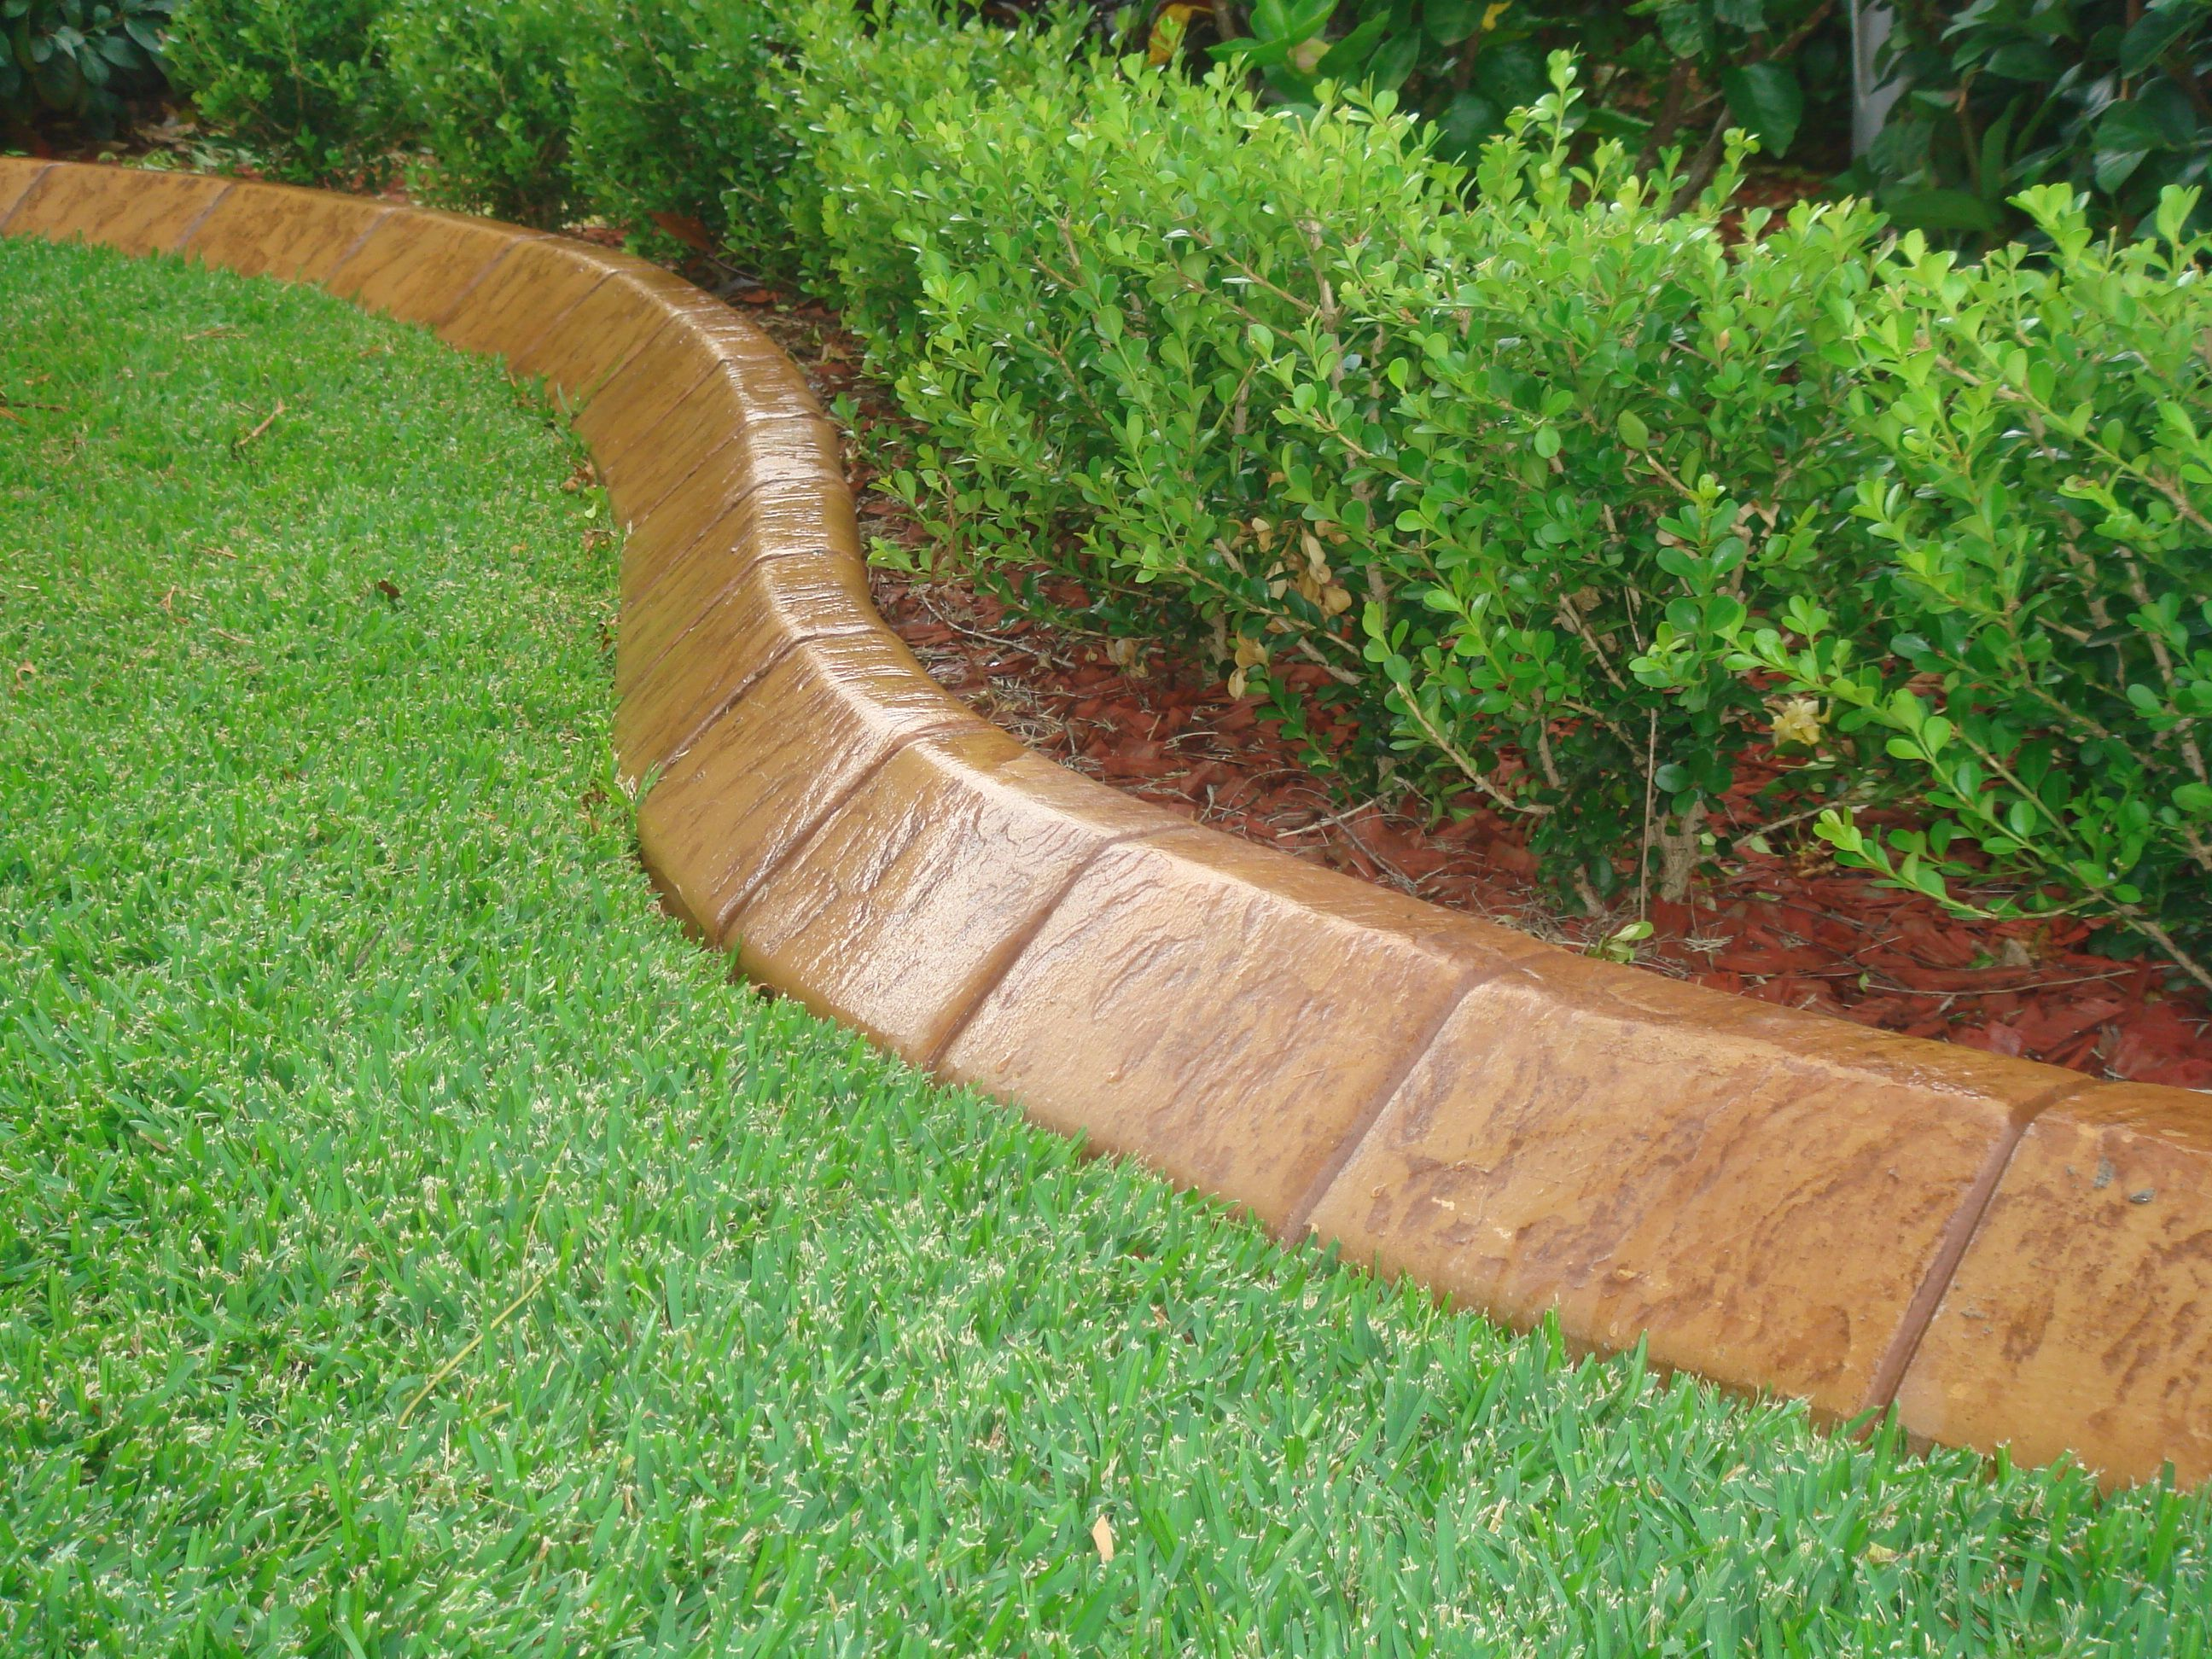 Plastic Garden Edging Ideas 7 Find This Pin And More On Home Ideas Garden Borders And Garden Edging